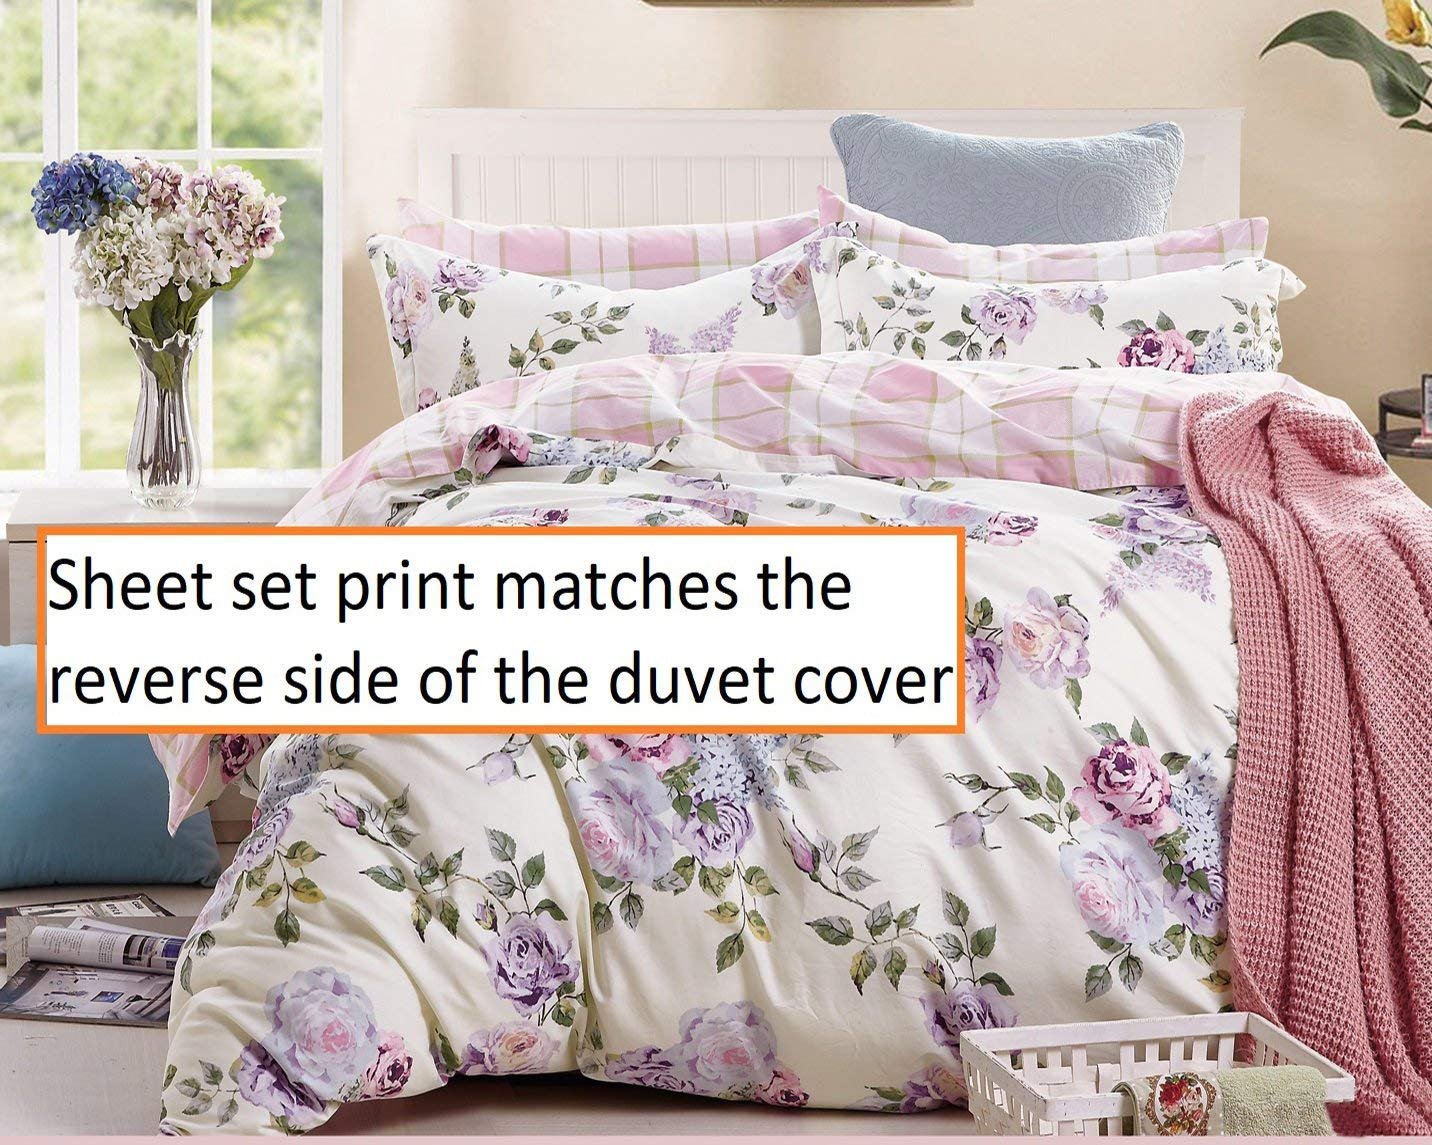 Swanson Beddings Pink-Purple Roses 100% Cotton Sheet Set : Fitted Sheet, Flat Sheet and Two Matching Pillowcases (Queen)